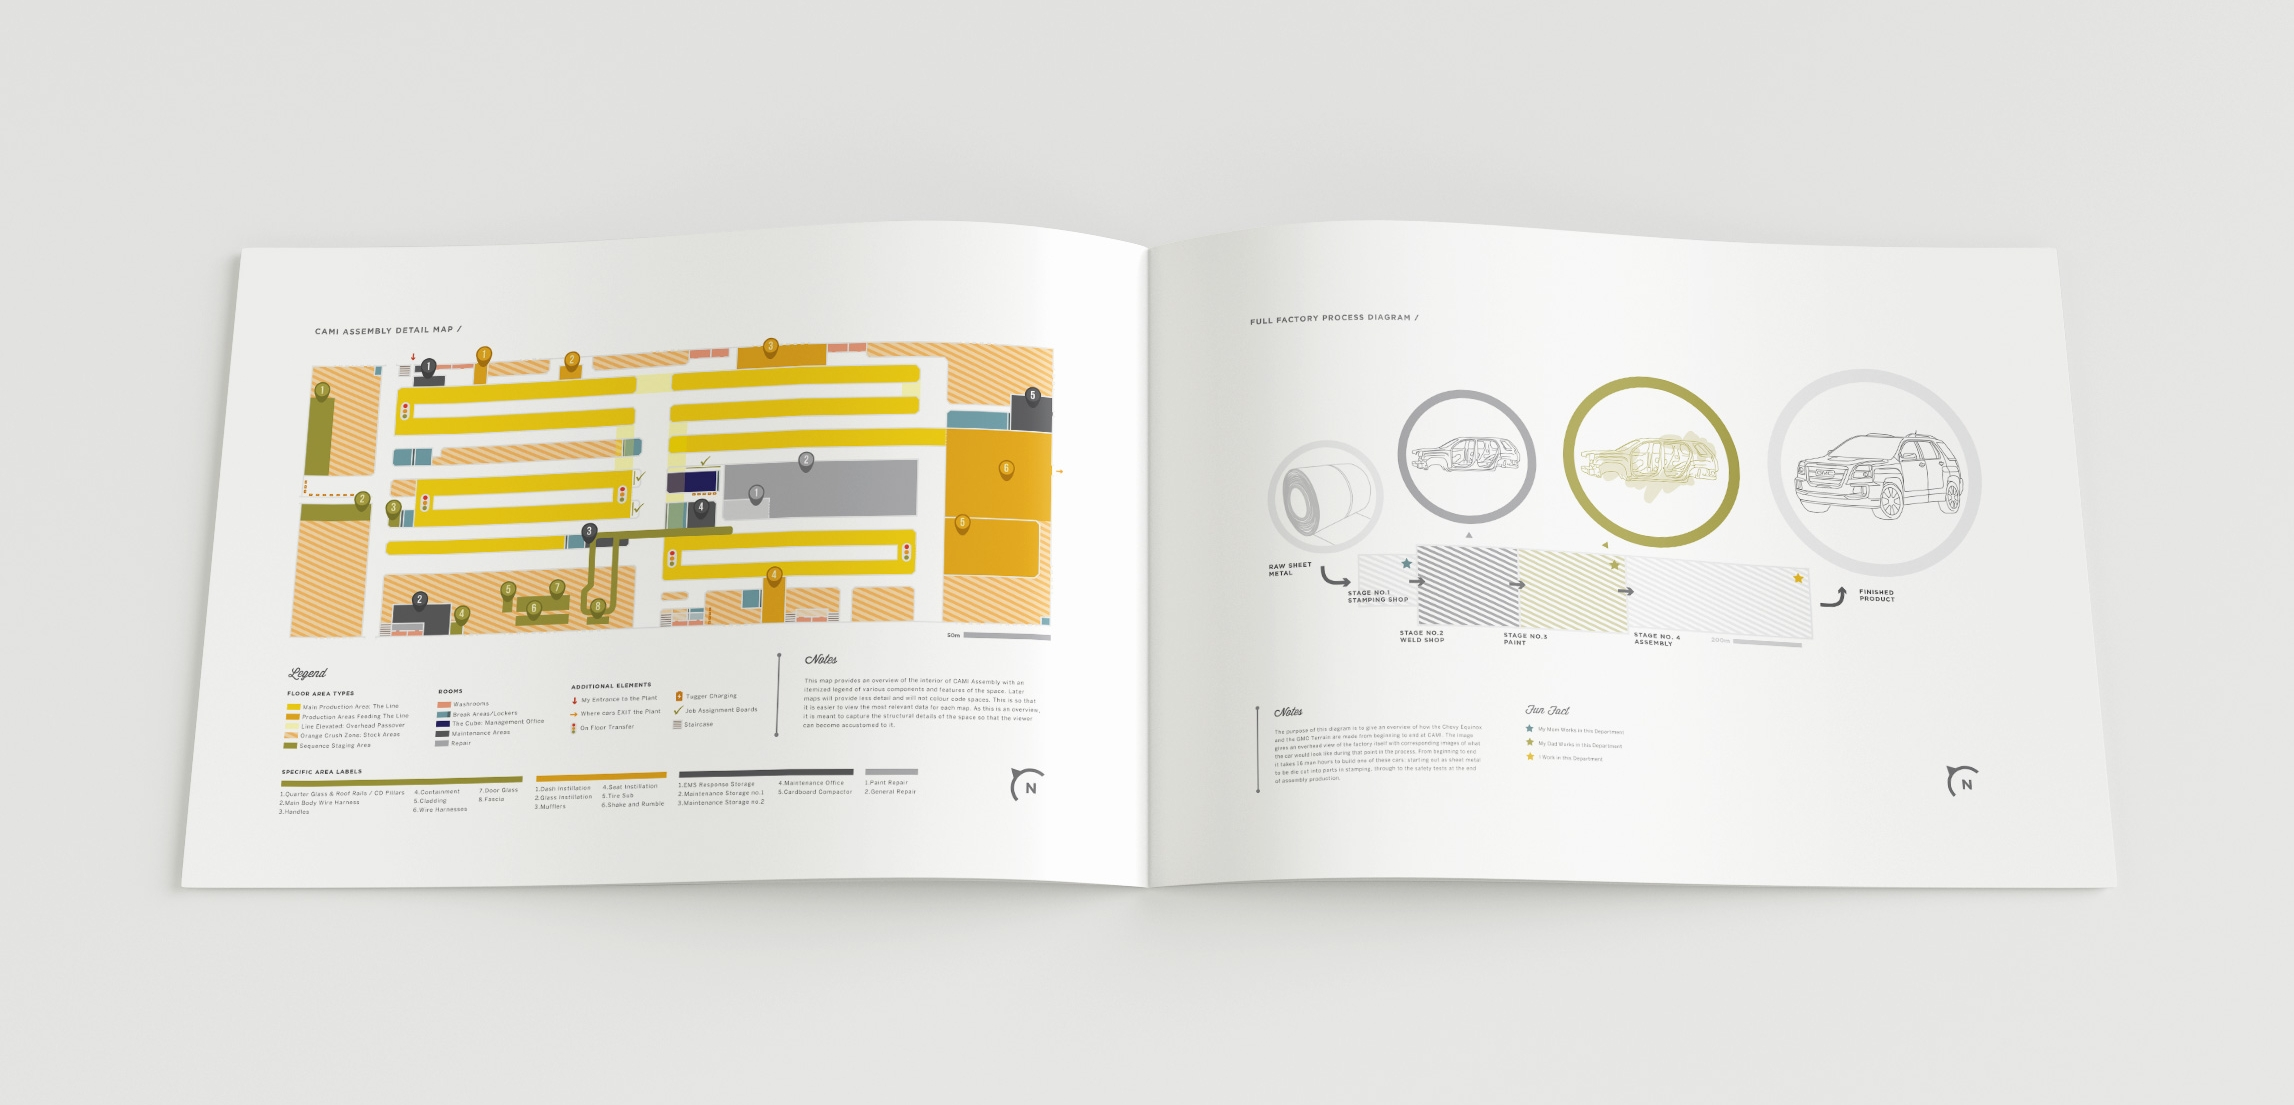 Contextual Pages: Left -CAMI Assembly detail map  /  Right - Full factory process diagram